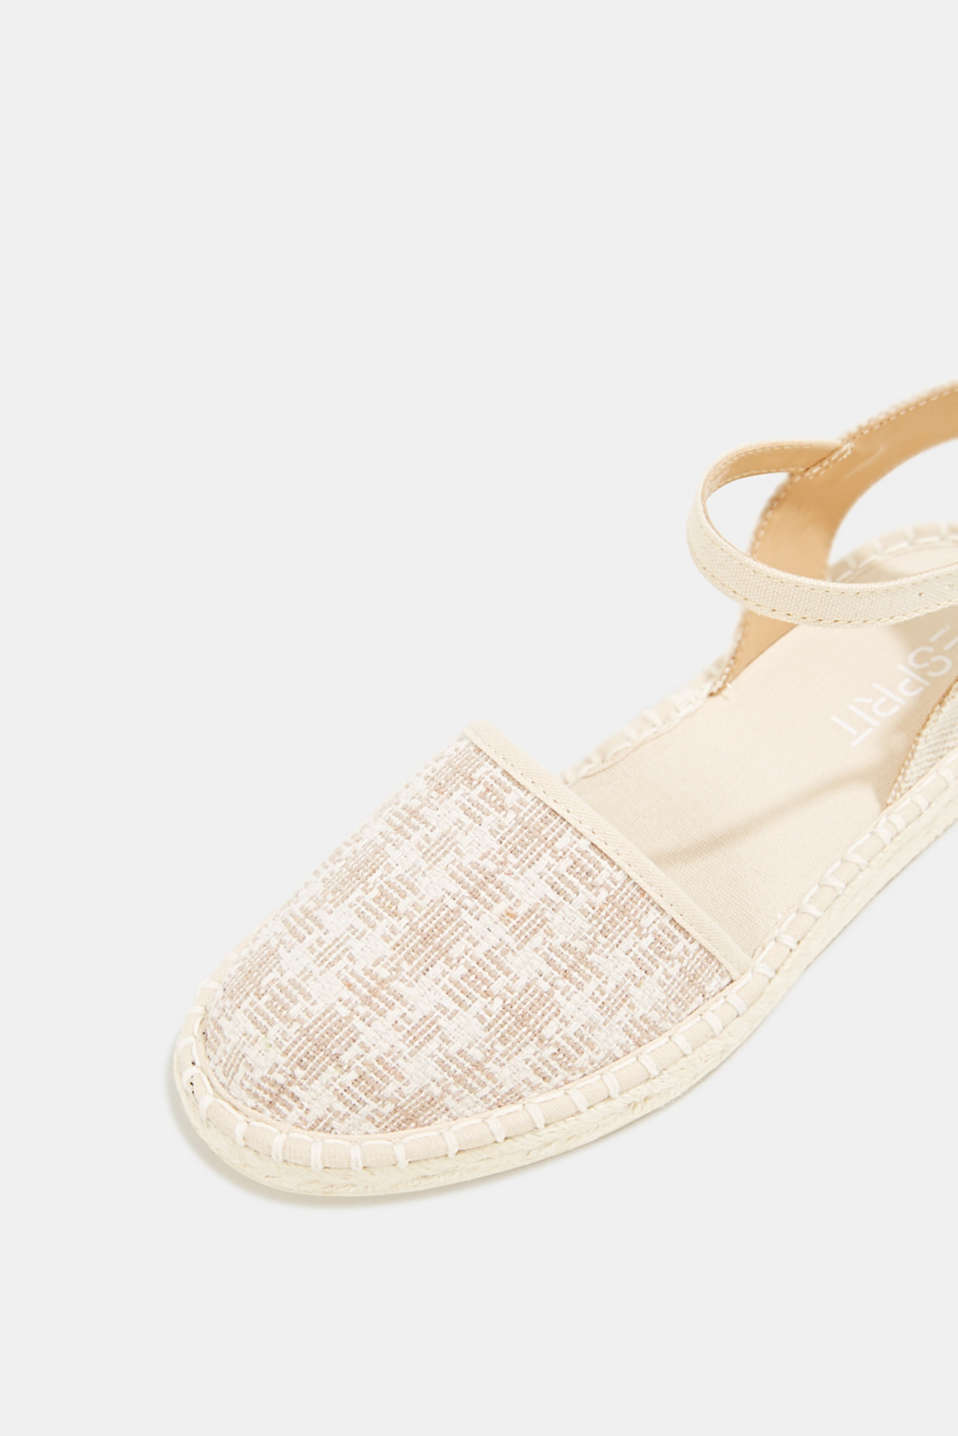 Espadrille sandals with a check pattern, BEIGE, detail image number 4